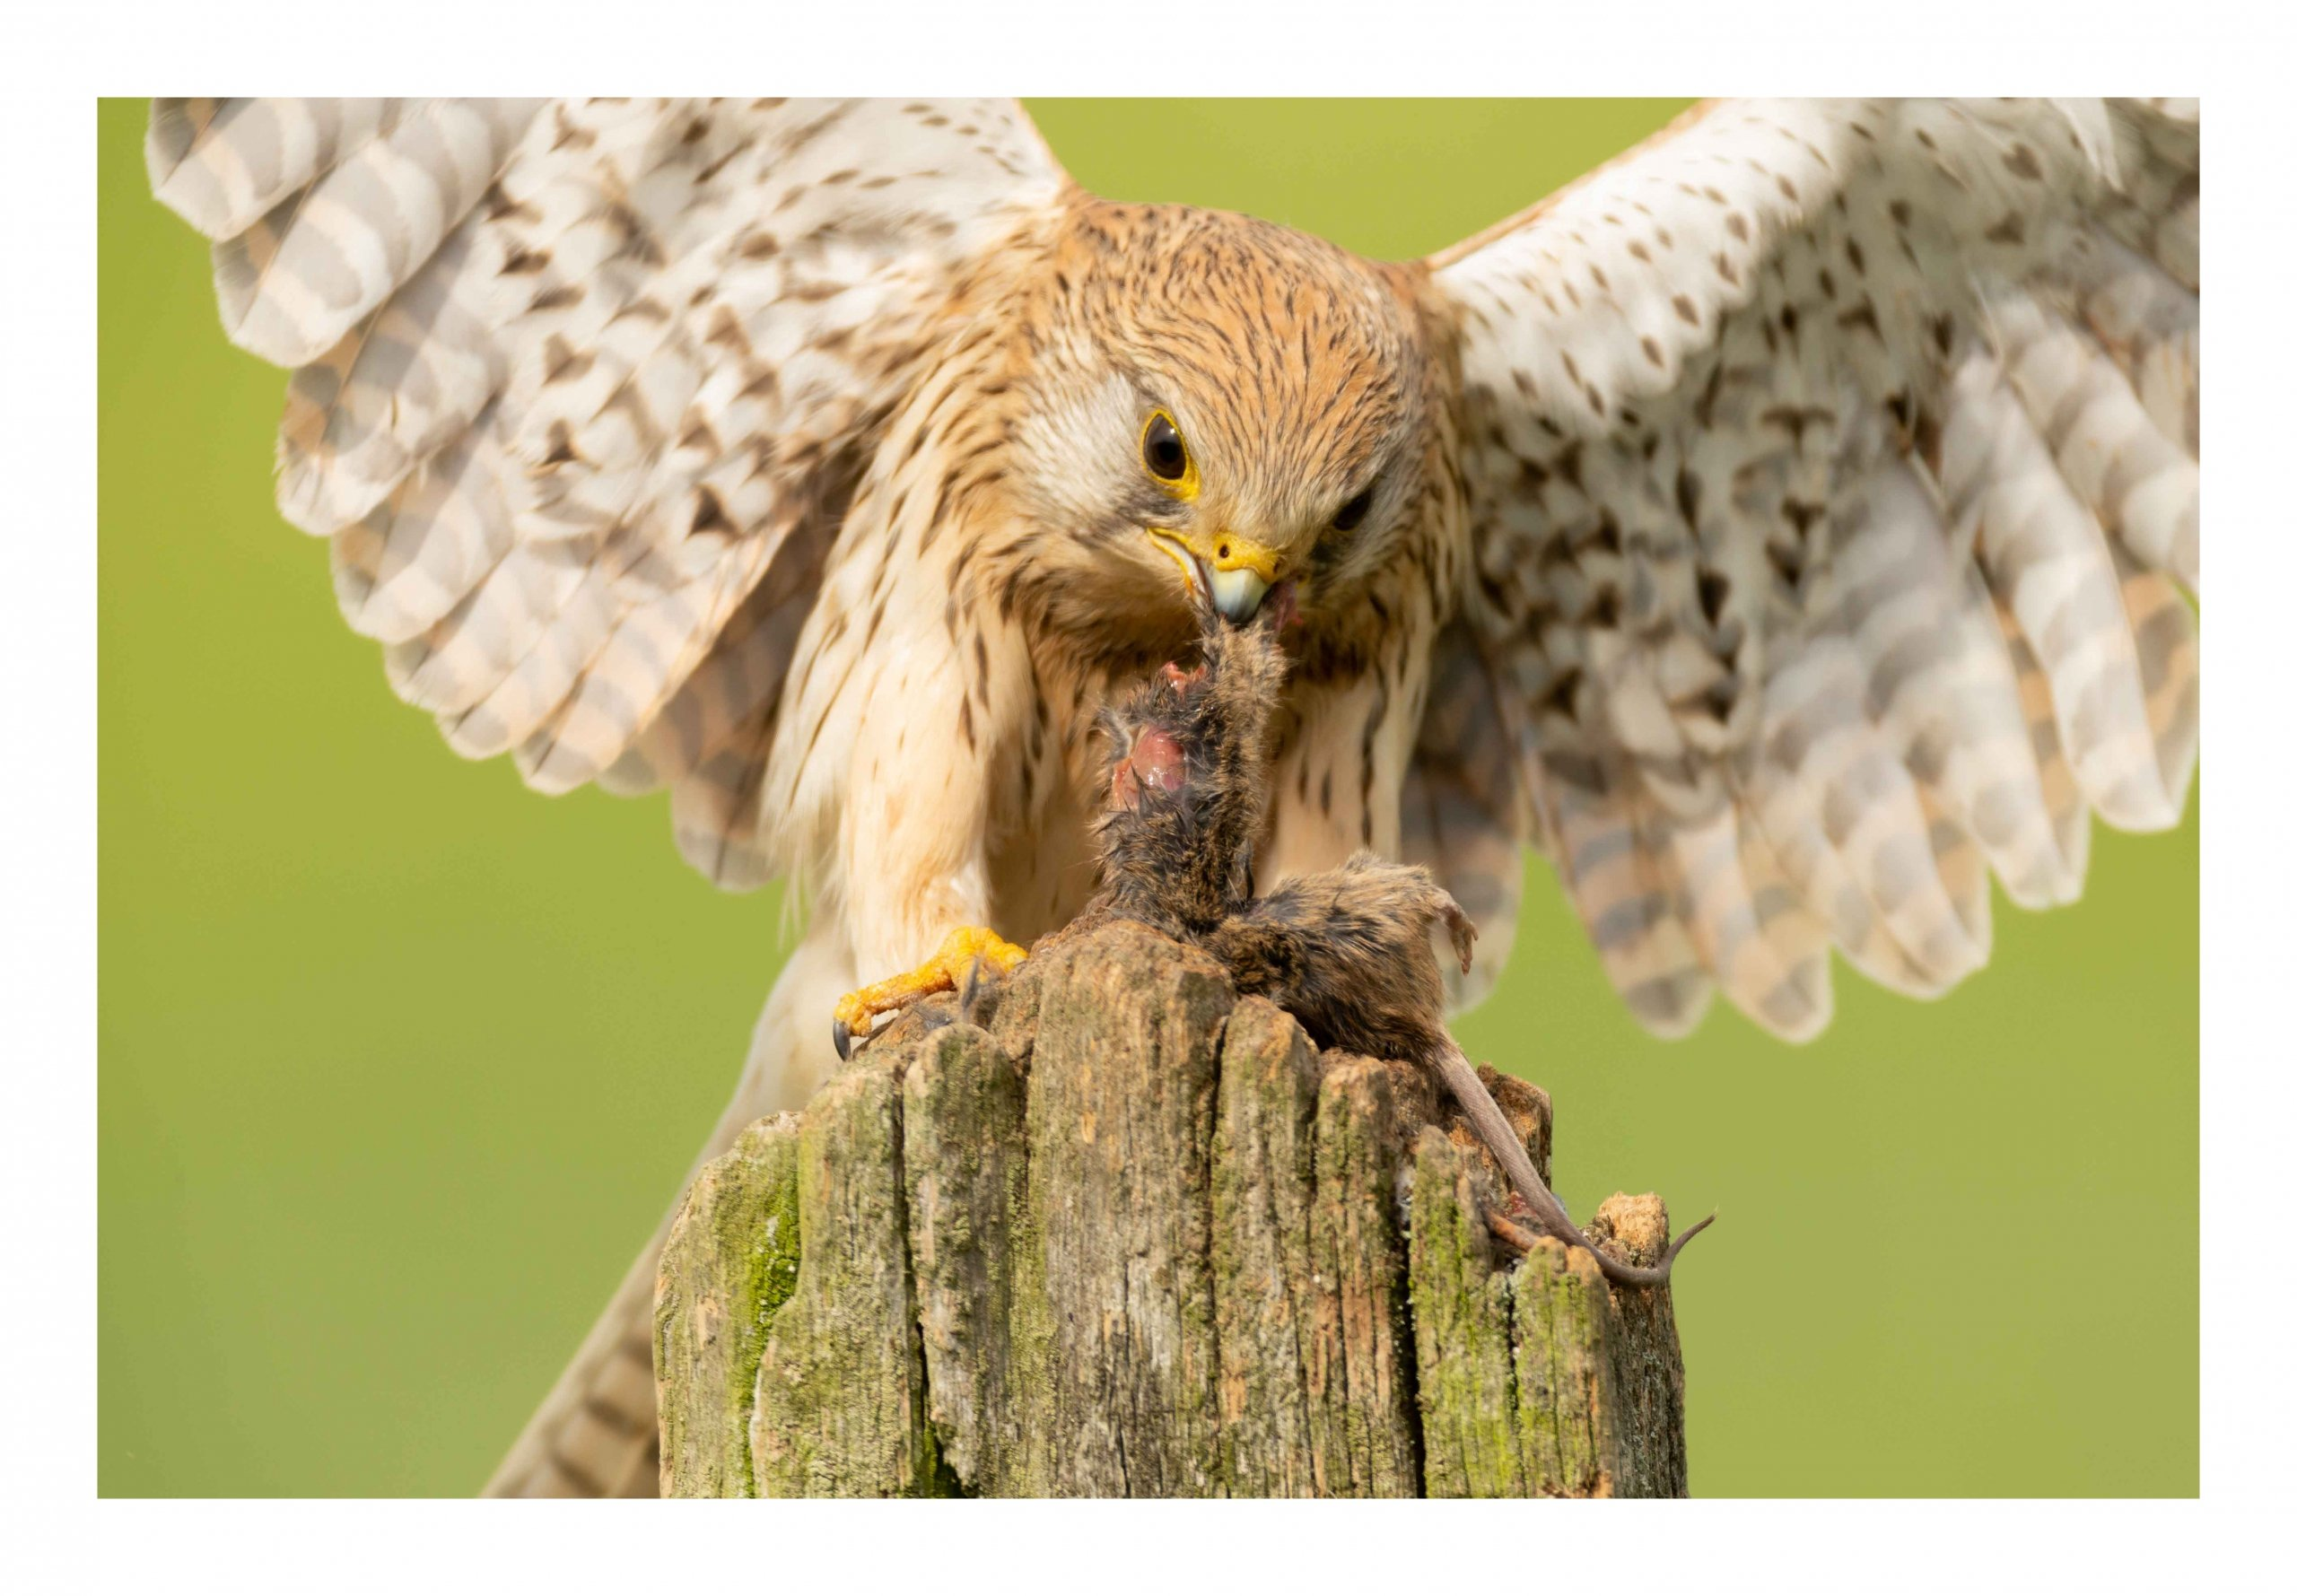 Close up of kestrel eating a mouse